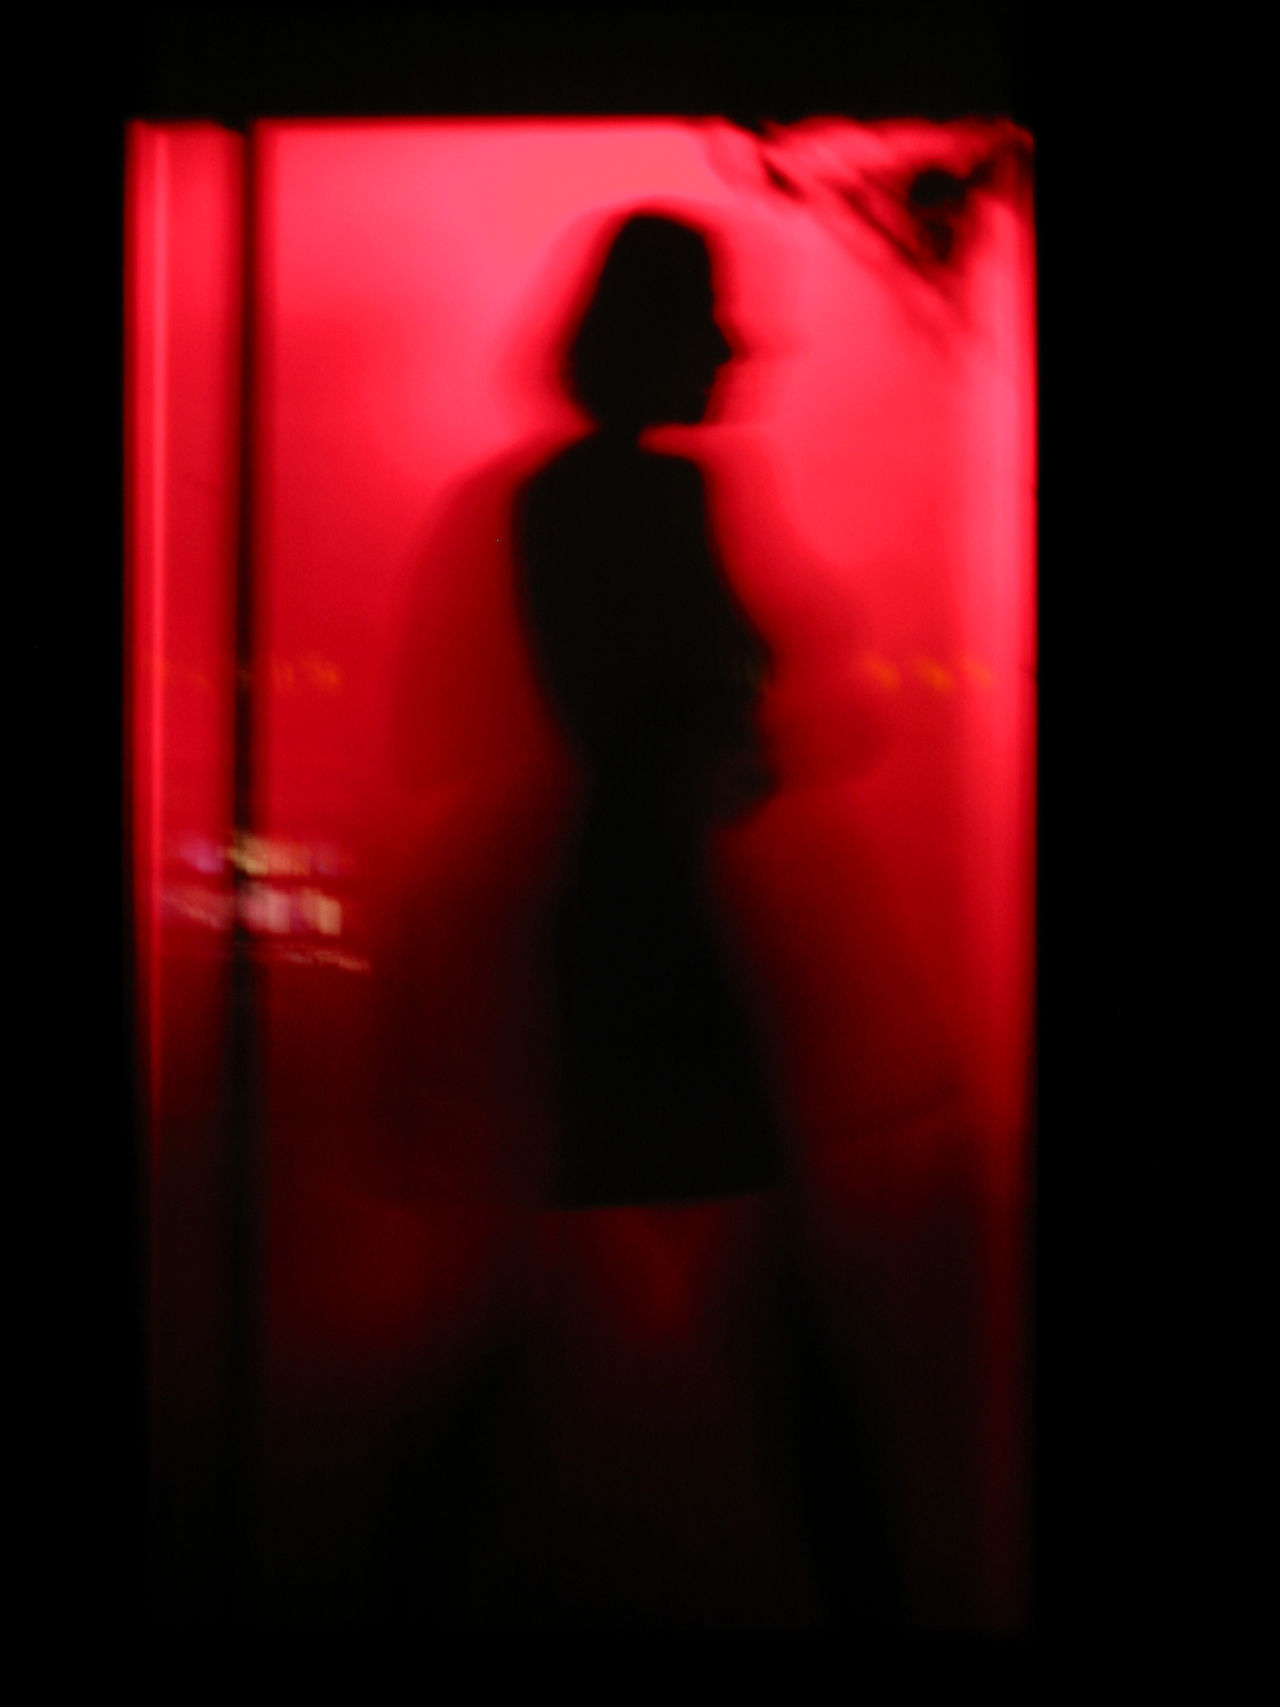 Adult Adults Only Dancer Dancing Entertainment Night Night Club Nightlife One Person Red Red Light Red Light District Silhouette Standing Table Dance Unrecognizable Person Woman